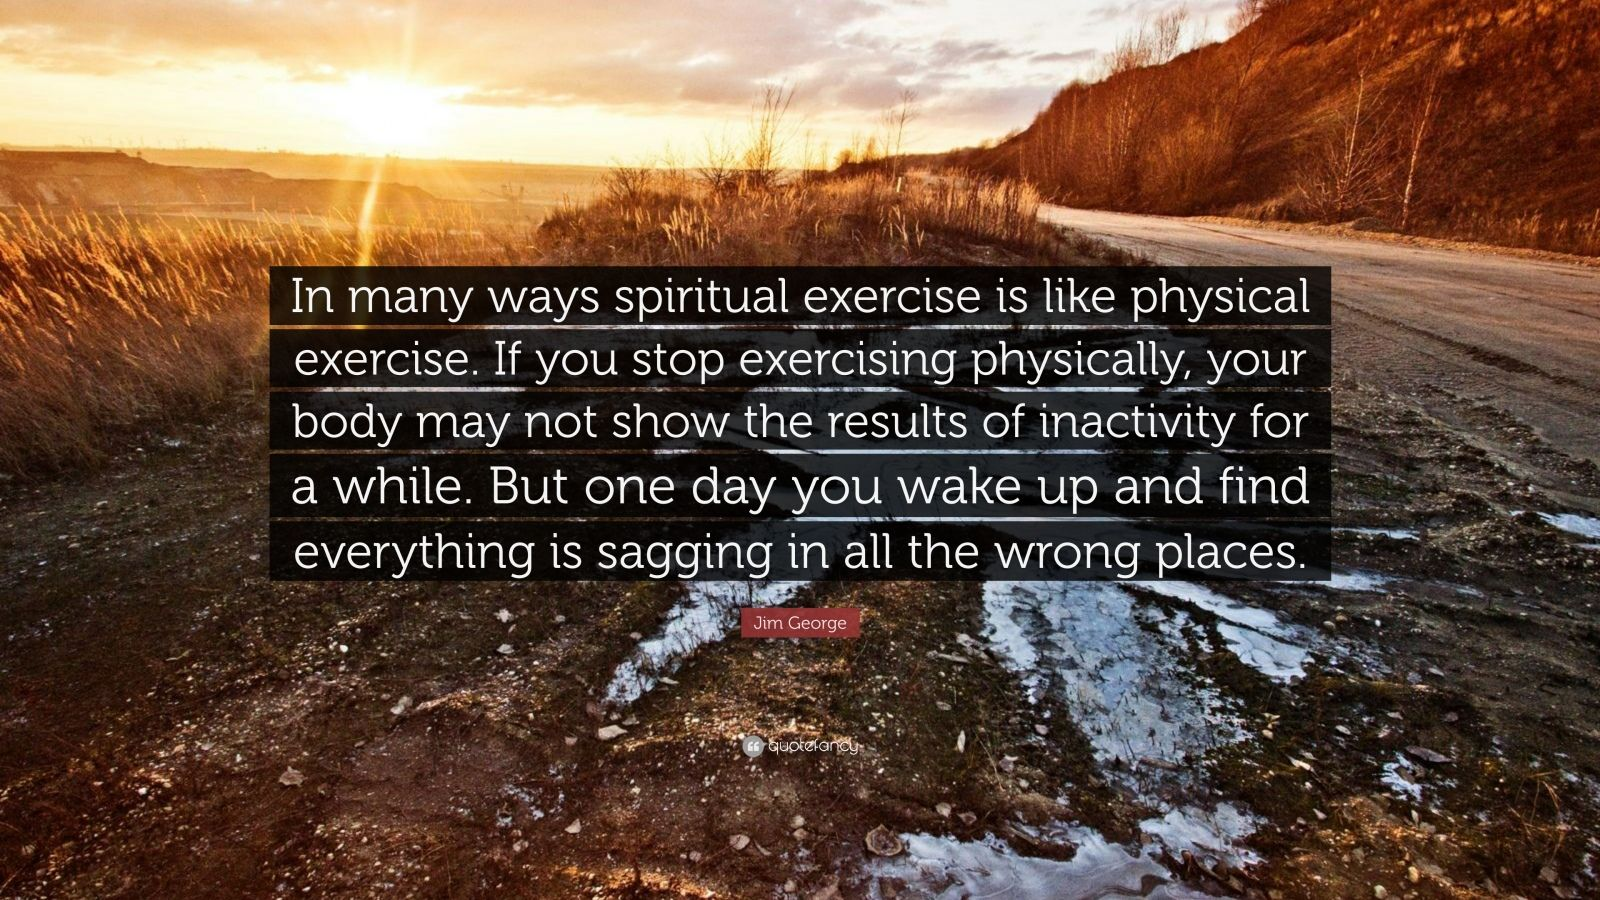 "Jim George Quote: ""In many ways spiritual exercise is like physical exercise. If you stop exercising physically, your body may not show the results of inactivity for a while. But one day you wake up and find everything is sagging in all the wrong places."""